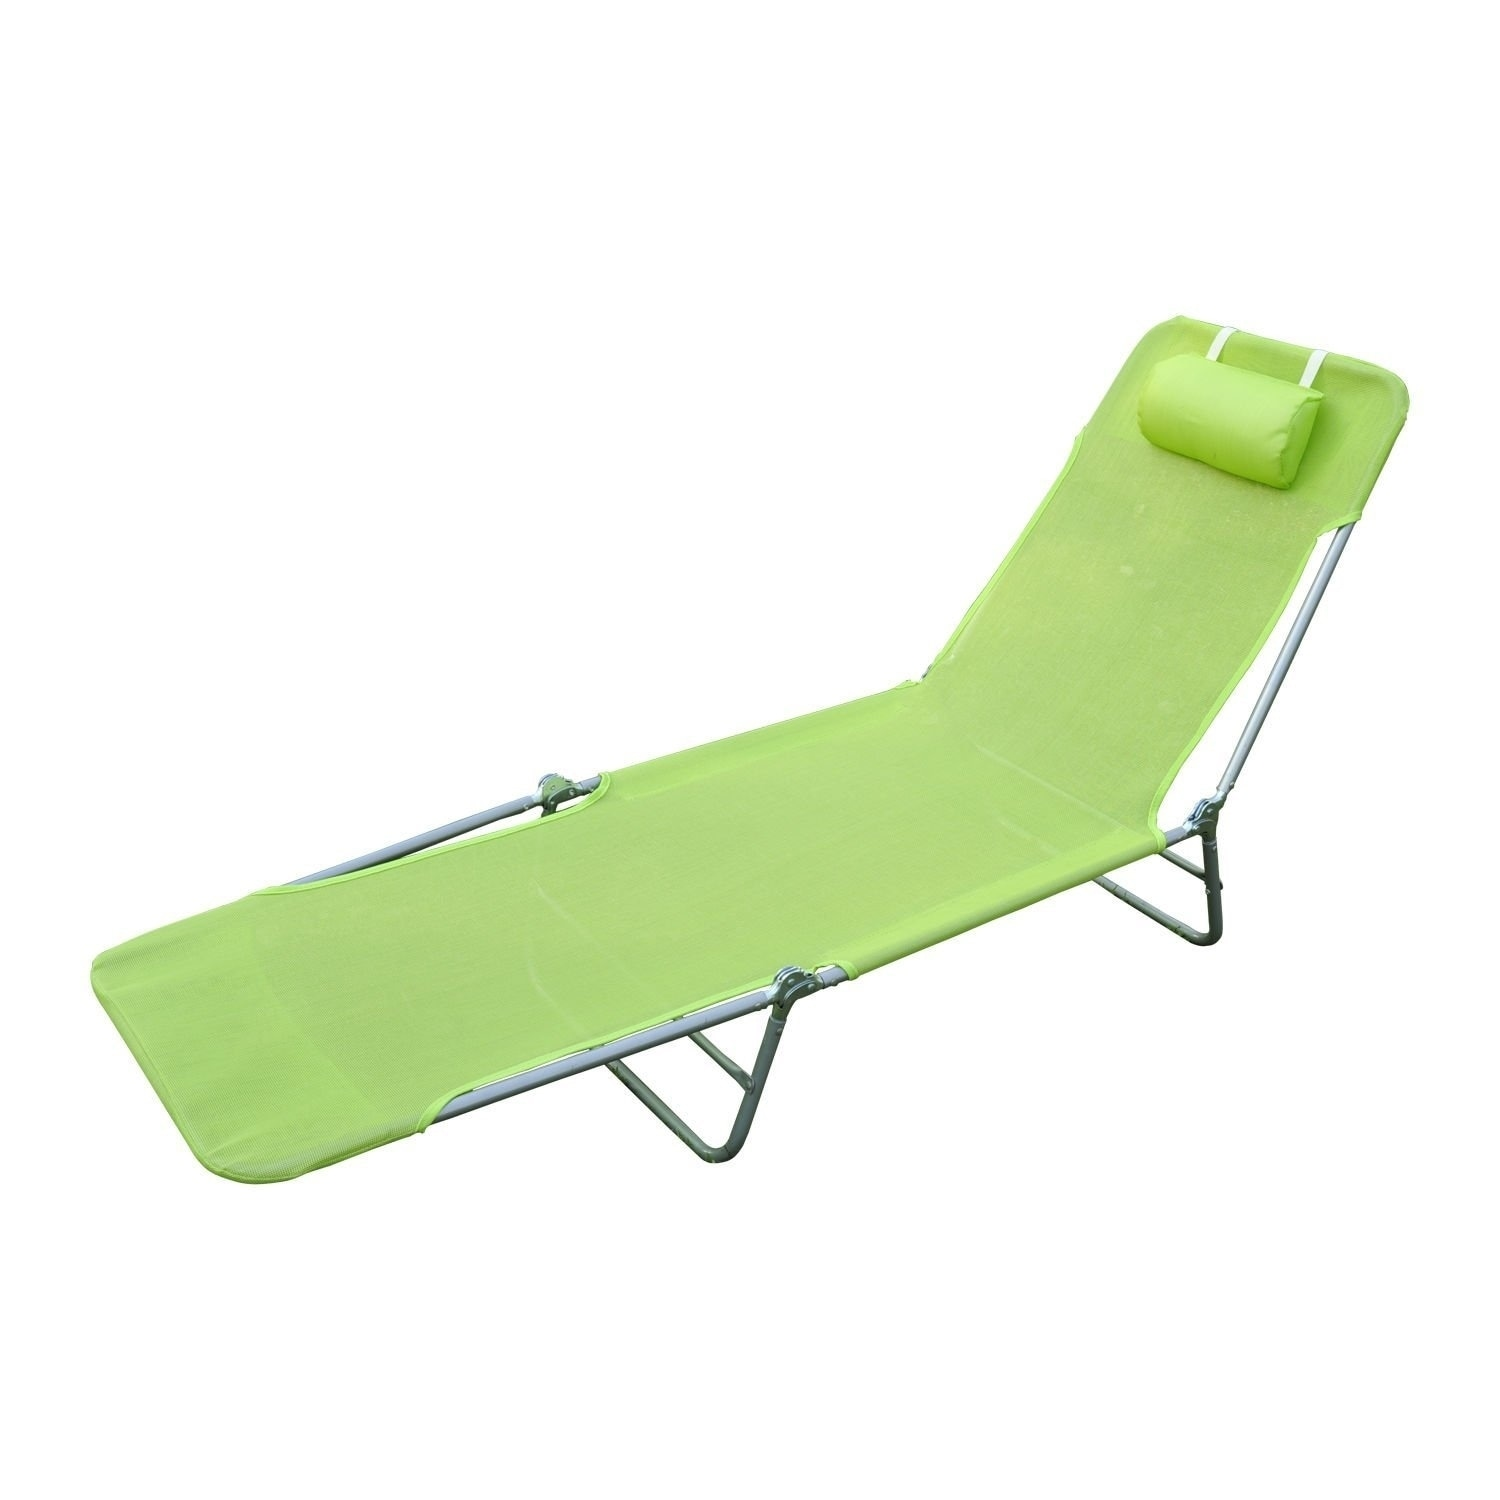 Lounge Chair Patio Aluminum Lounge Chairs Patio Furniture